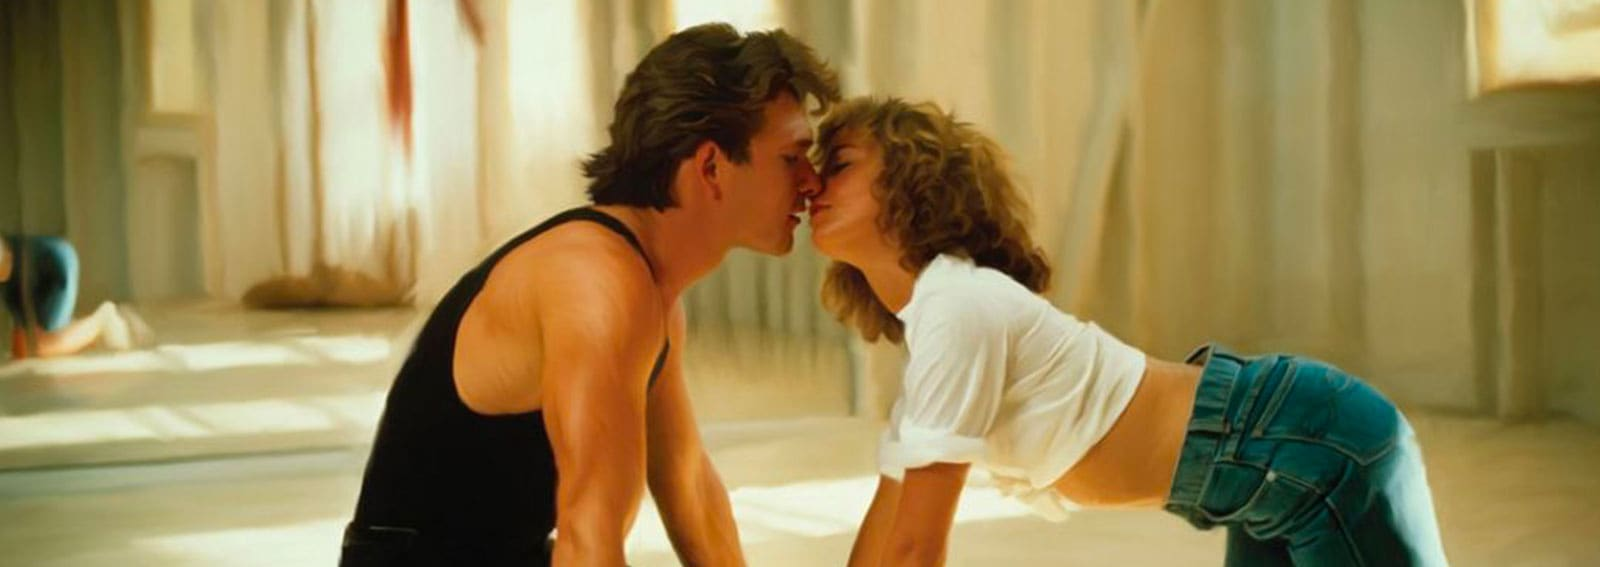 Dirty Dancing film amore